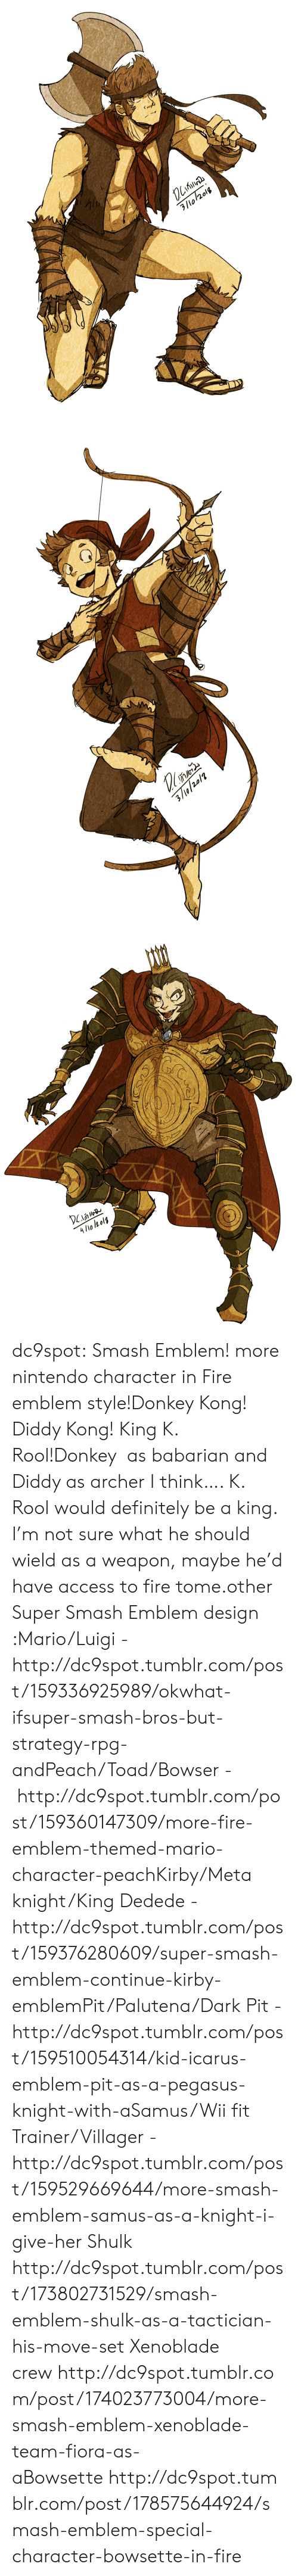 Bowser, Definitely, and Donkey: 3/lo/2018   3/9/20/2   4/lo l2 olg dc9spot:  Smash Emblem! more nintendo character in Fire emblem style!Donkey Kong! Diddy Kong! King K. Rool!Donkey as babarian and Diddy as archer I think…. K. Rool would definitely be a king. I'm not sure what he should wield as a weapon, maybe he'd have access to fire tome.other Super Smash Emblem design :Mario/Luigi - http://dc9spot.tumblr.com/post/159336925989/okwhat-ifsuper-smash-bros-but-strategy-rpg-andPeach/Toad/Bowser - http://dc9spot.tumblr.com/post/159360147309/more-fire-emblem-themed-mario-character-peachKirby/Meta knight/King Dedede - http://dc9spot.tumblr.com/post/159376280609/super-smash-emblem-continue-kirby-emblemPit/Palutena/Dark Pit - http://dc9spot.tumblr.com/post/159510054314/kid-icarus-emblem-pit-as-a-pegasus-knight-with-aSamus/Wii fit Trainer/Villager - http://dc9spot.tumblr.com/post/159529669644/more-smash-emblem-samus-as-a-knight-i-give-her  Shulk http://dc9spot.tumblr.com/post/173802731529/smash-emblem-shulk-as-a-tactician-his-move-set  Xenoblade crewhttp://dc9spot.tumblr.com/post/174023773004/more-smash-emblem-xenoblade-team-fiora-as-aBowsettehttp://dc9spot.tumblr.com/post/178575644924/smash-emblem-special-character-bowsette-in-fire